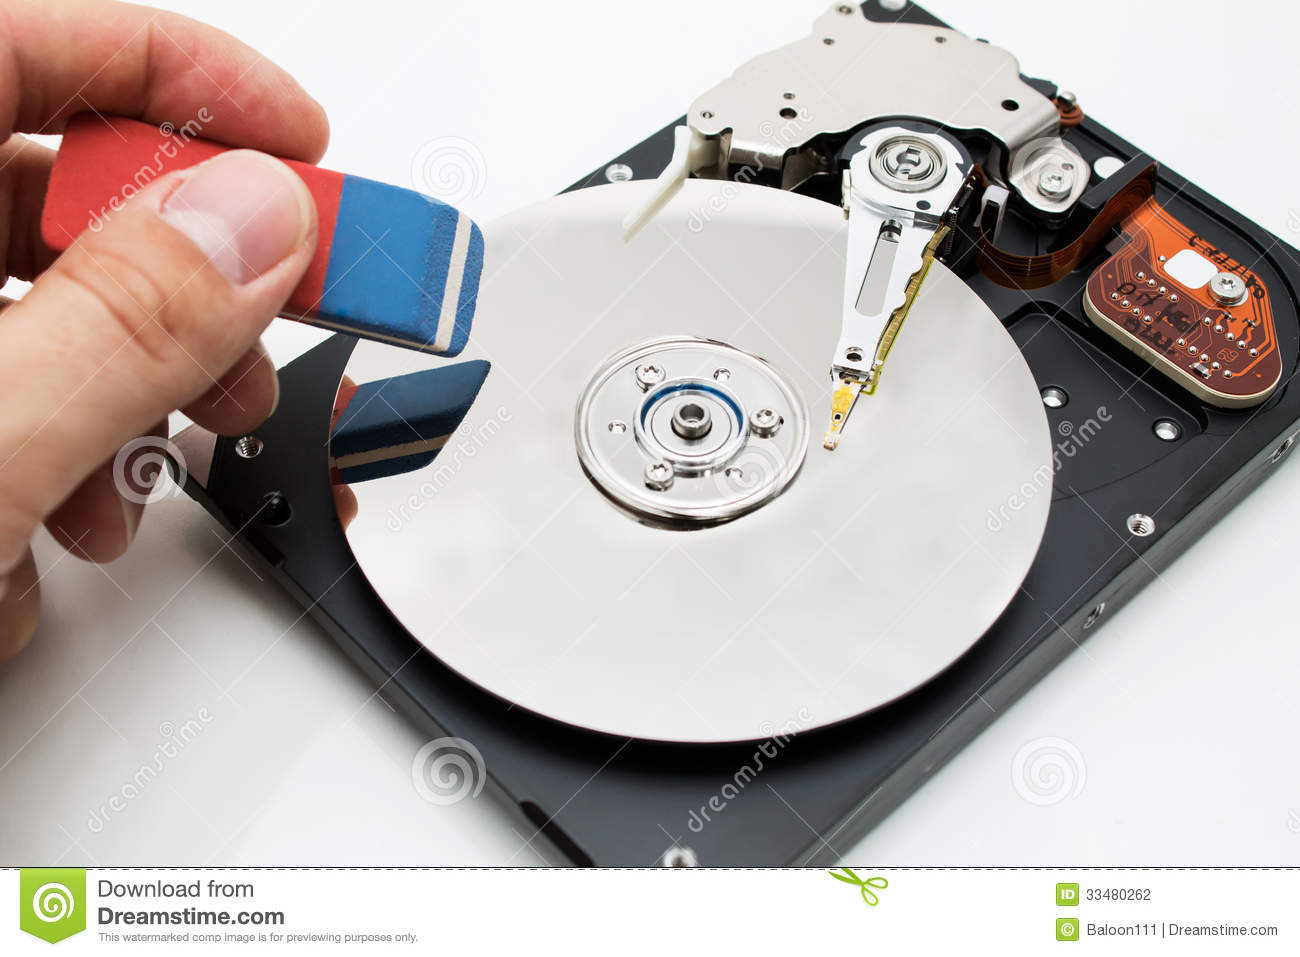 Hard Disk Drive Data Erase Metaphor Stock Photography. How Does A Relocation Company Work. Computer Engineering General. Video Marketing Production Help Desk Systems. Behavioral Economics Graduate Programs. Mortgage Lenders Jacksonville Fl. Internet Backup Solutions Plumbers Houston Tx. Vanity Toll Free Search Online Robotics Course. Cincinnati Self Storage Window Cleaners Austin